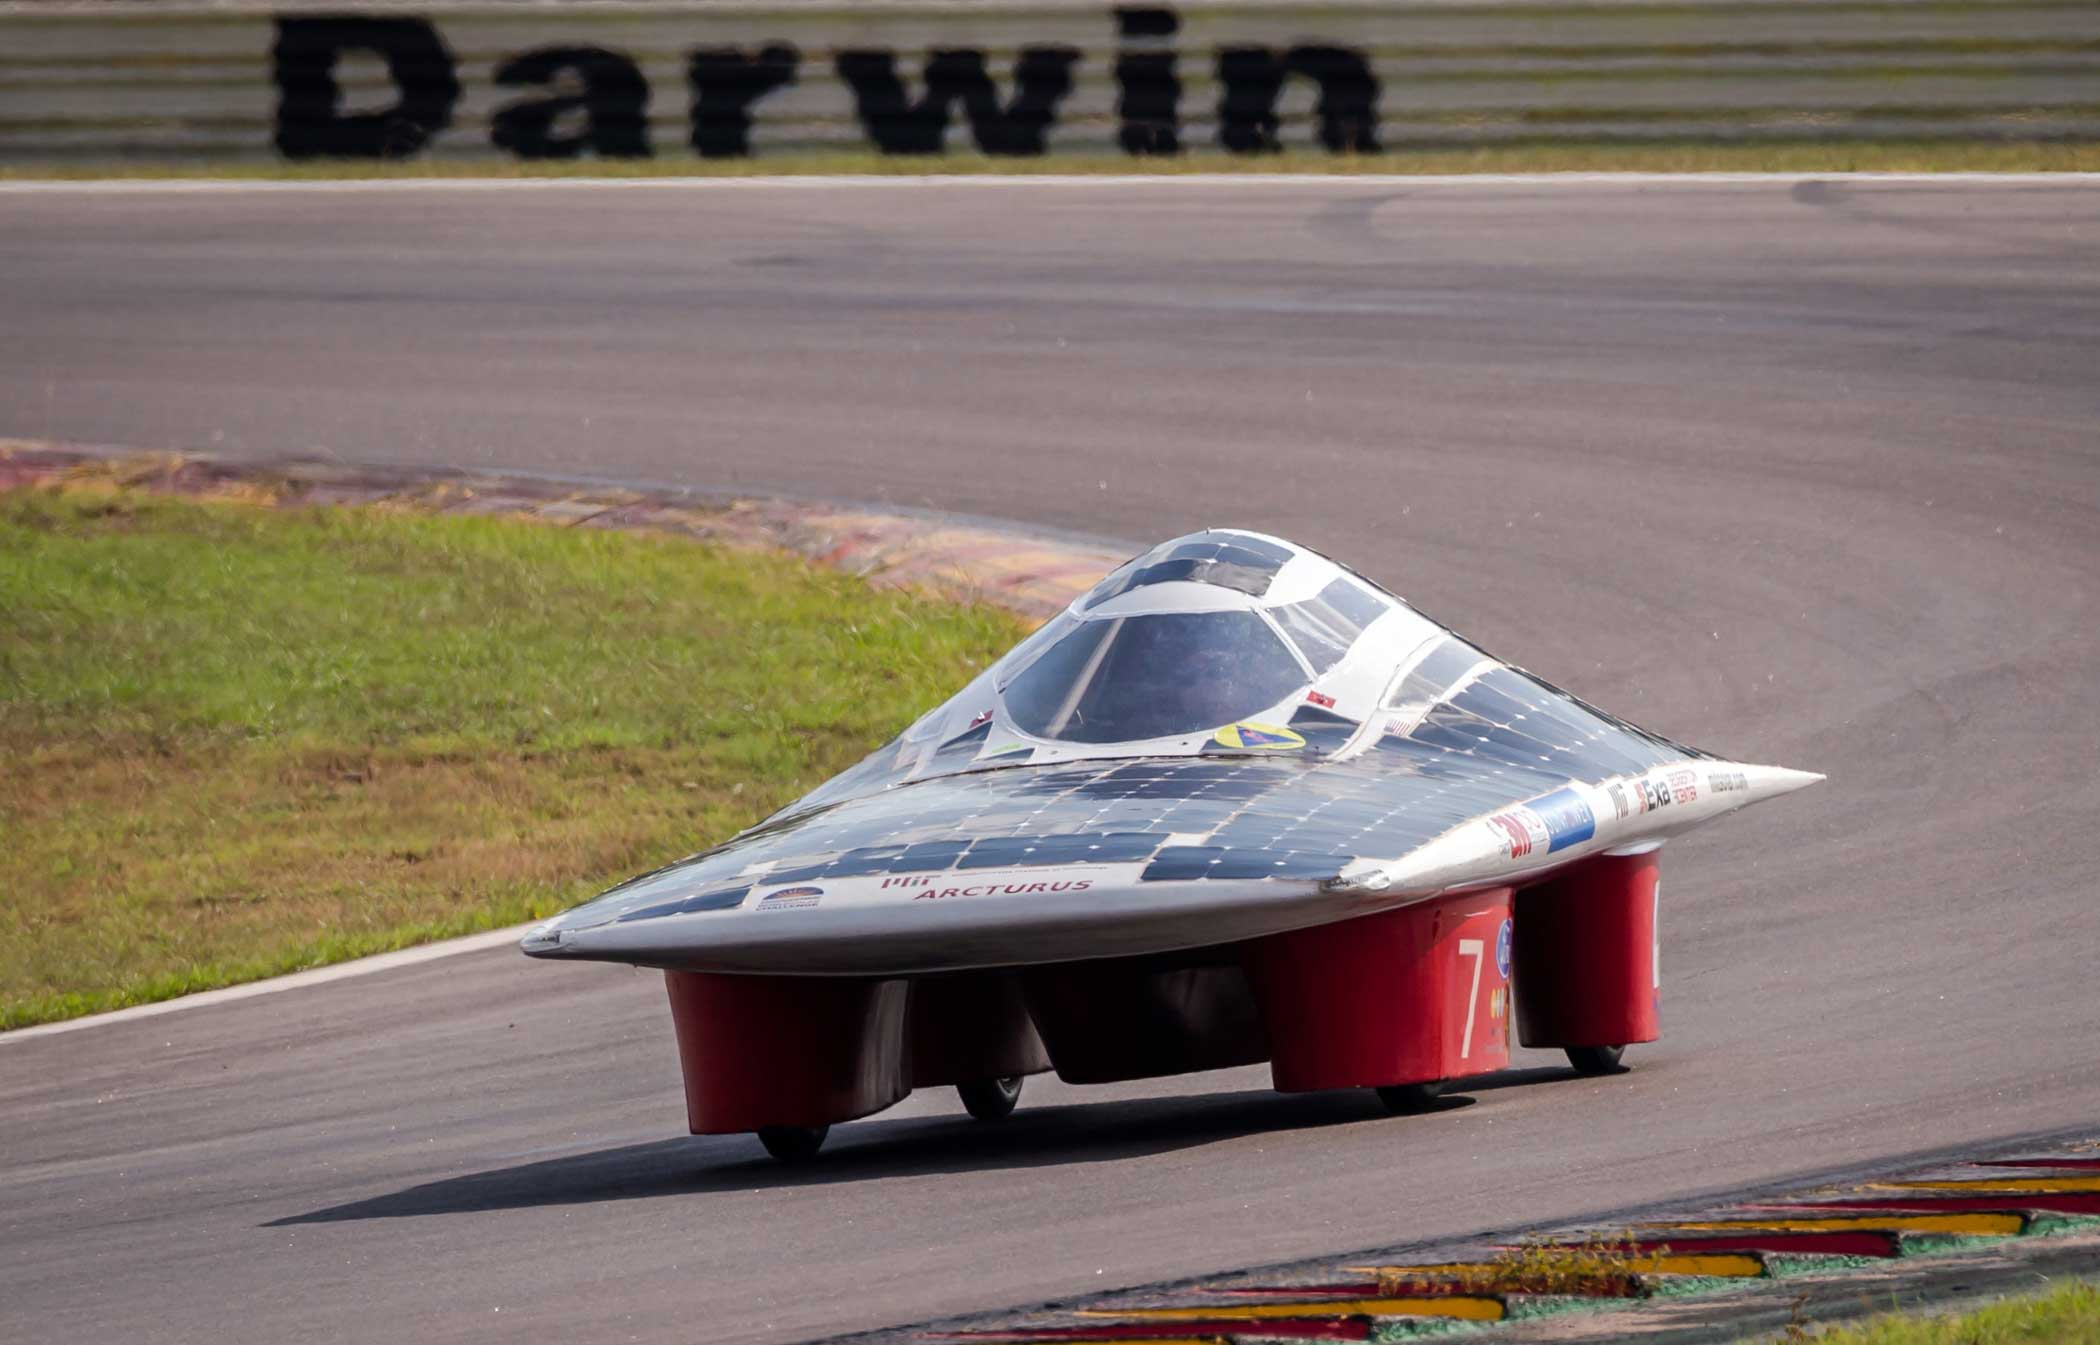 The Massachusetts Institute of Technology Solar Electric Vehicle Team car competes during the qualification lap on Oct. 17, 2015.